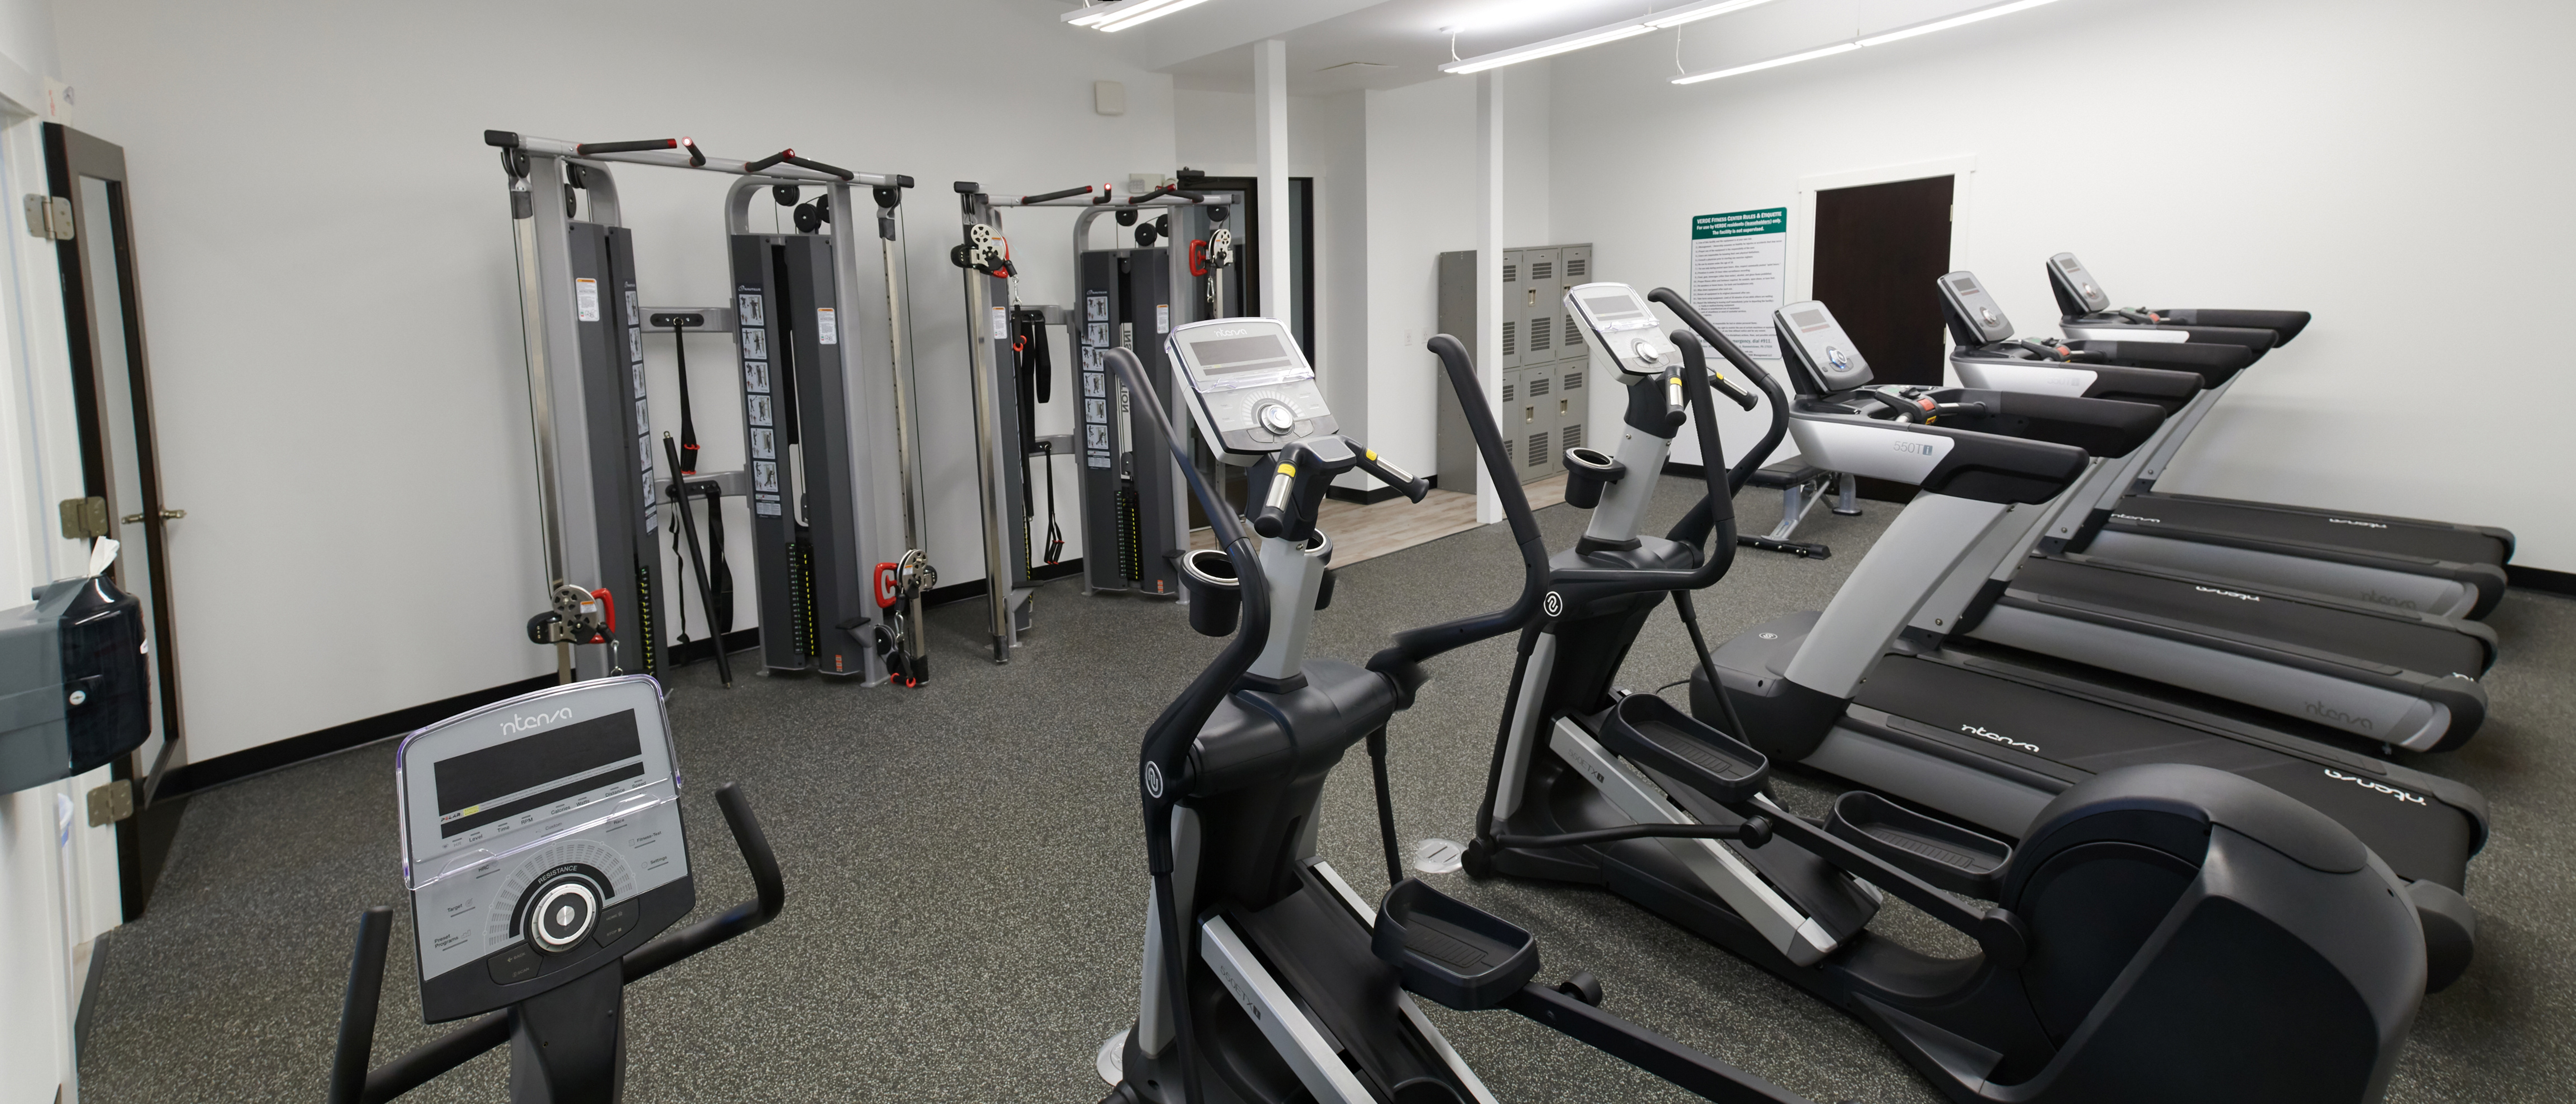 Fitness room with three treadmills, two ellipticals, and two cable machines.